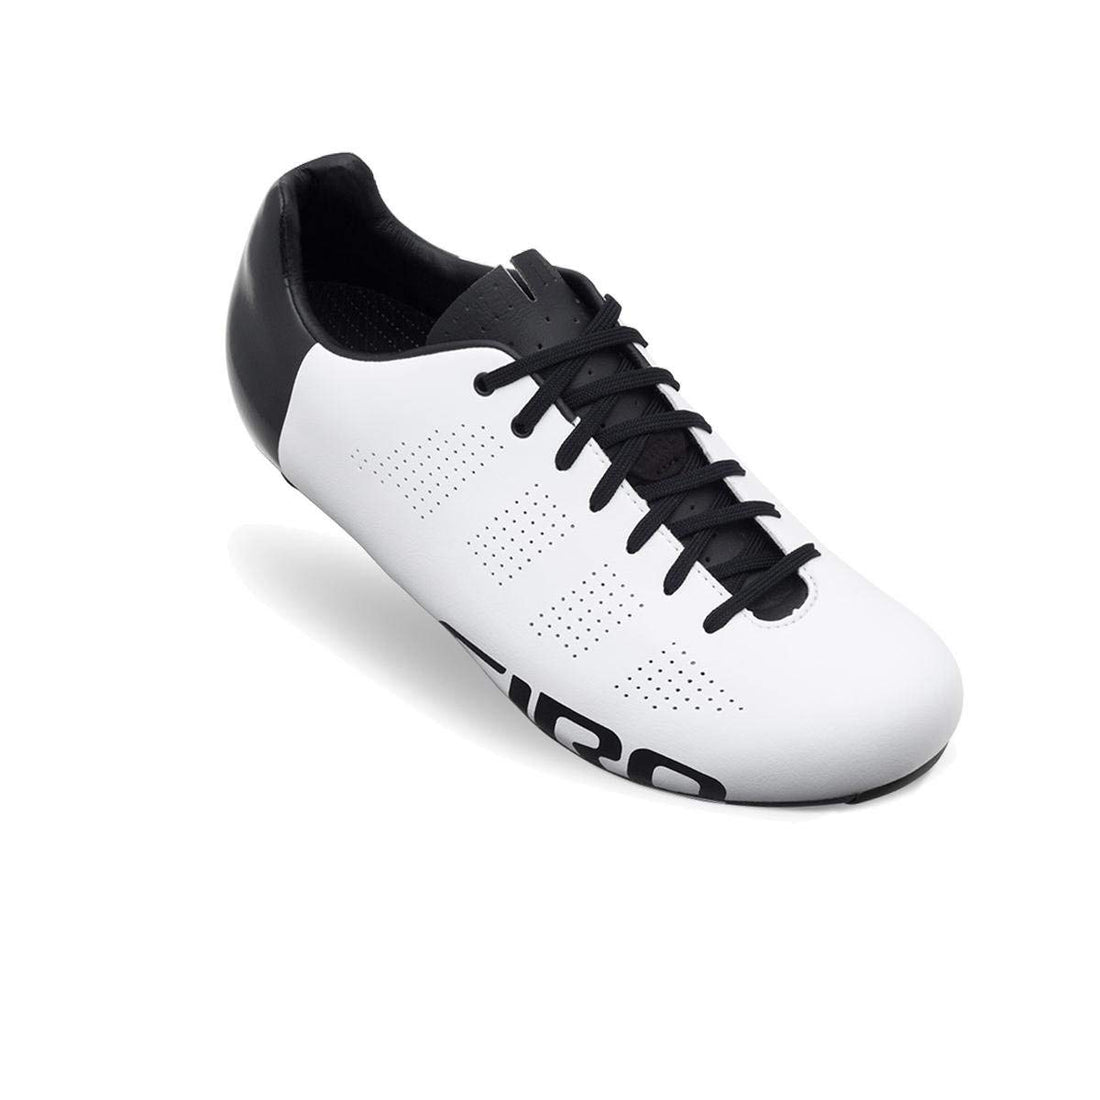 GIRO Empire ACC Road Shoes White/Black 43